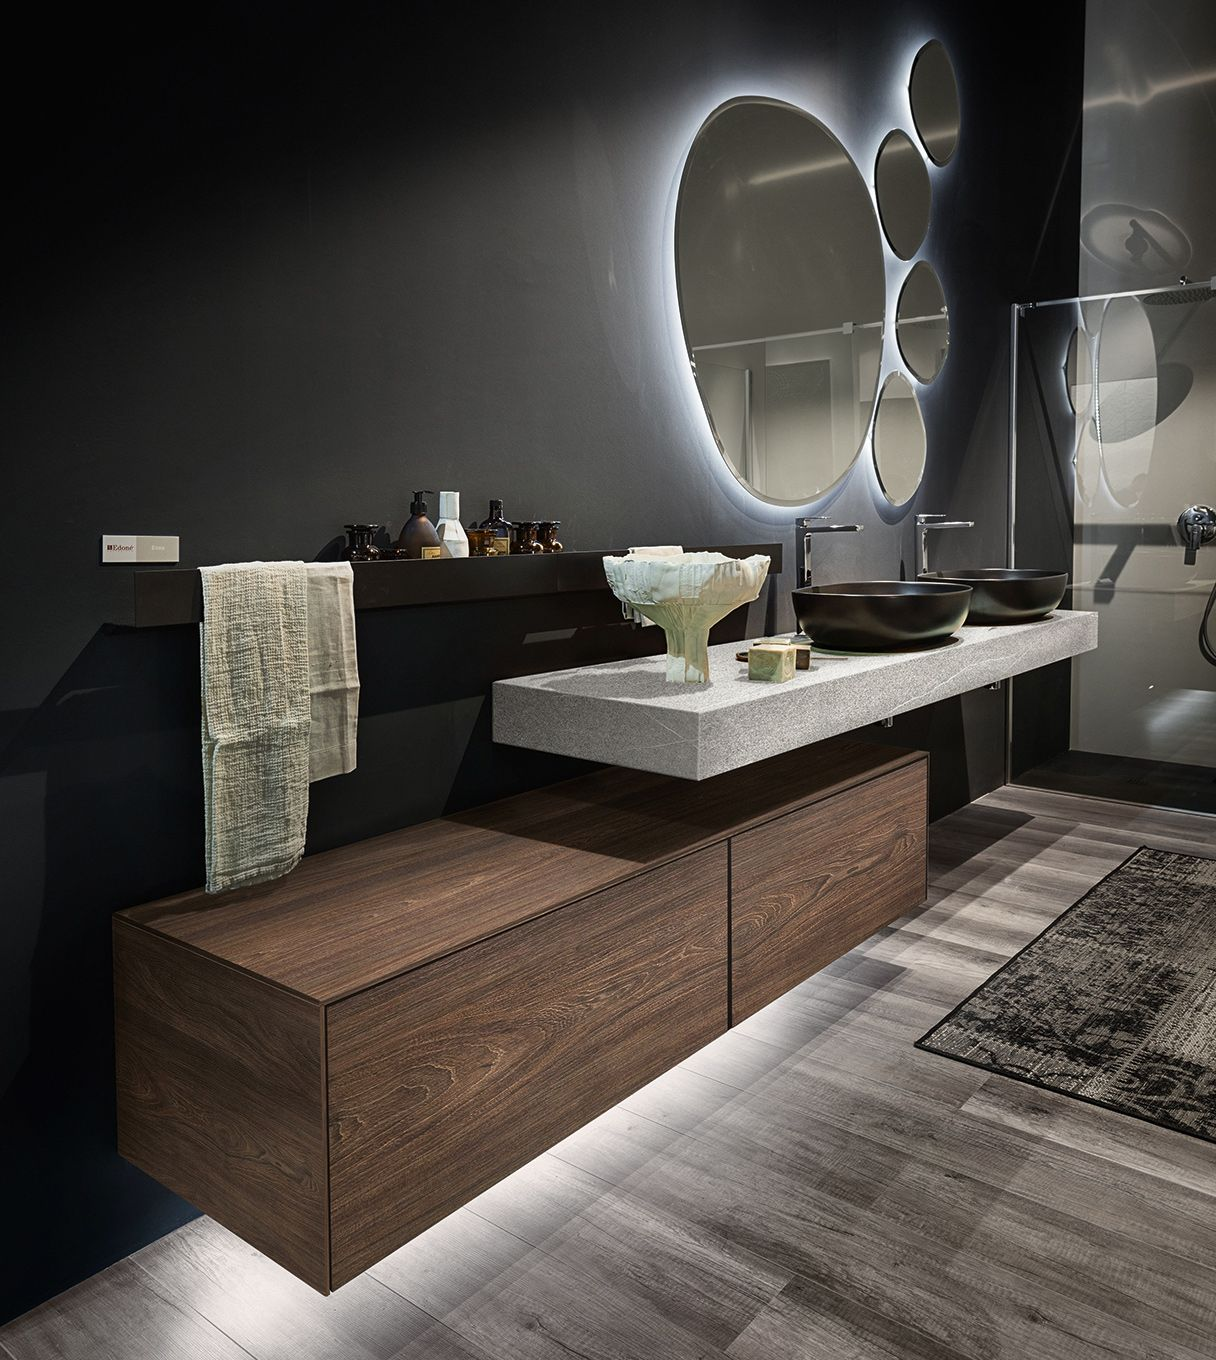 italian bathroom furnishing edoné, new material: hpl | house ideas ... - Agorà Arredo Bagno